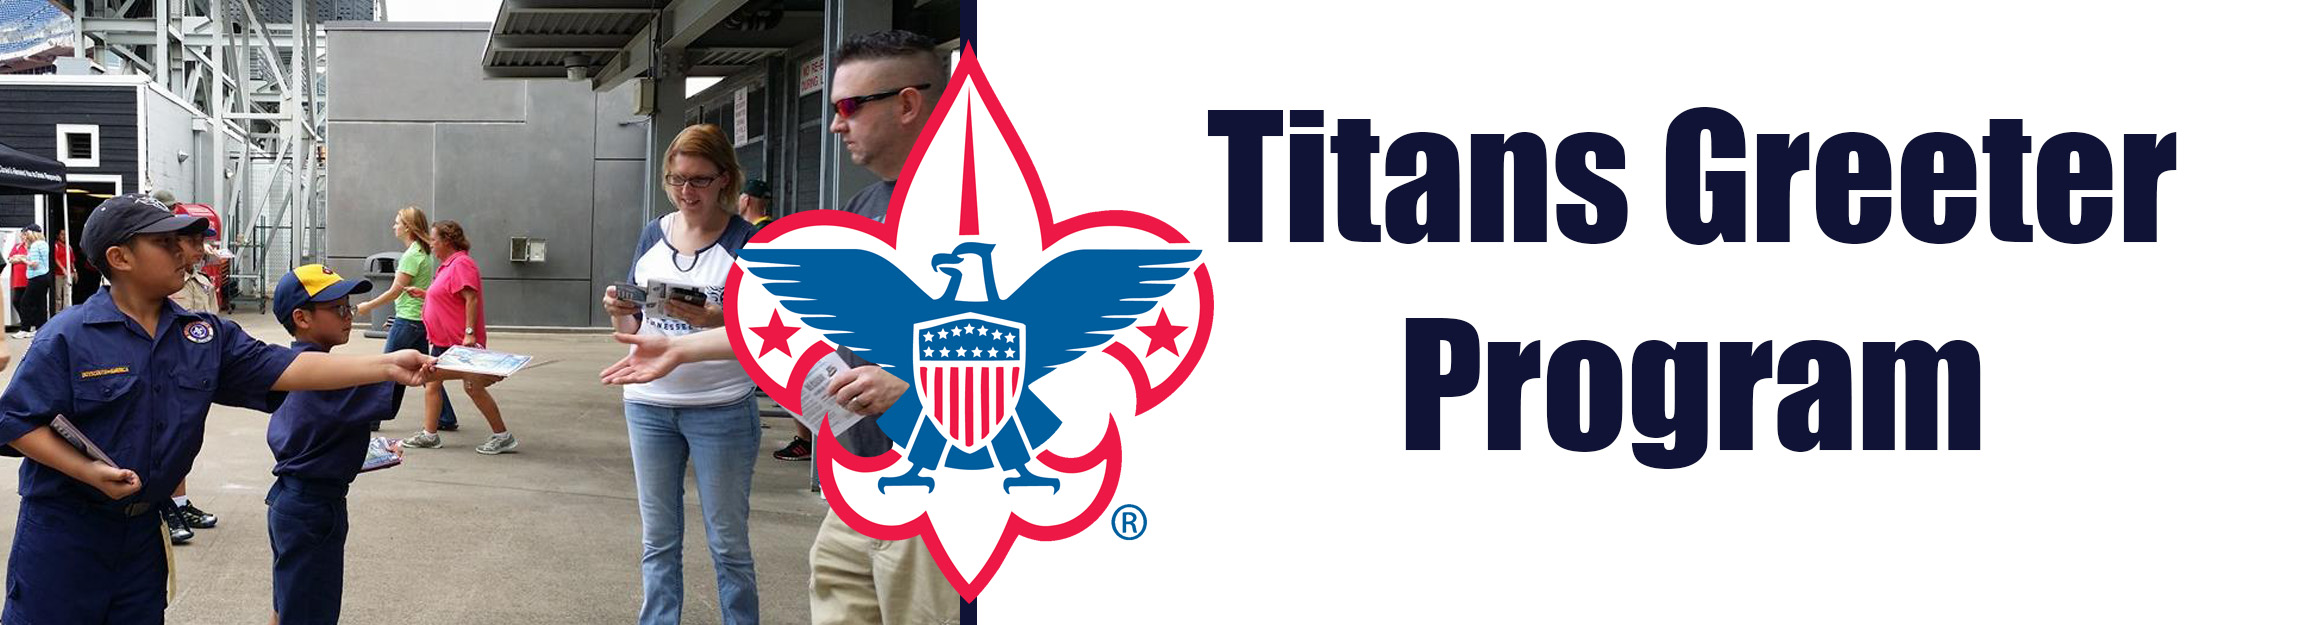 Titans Greeter Program